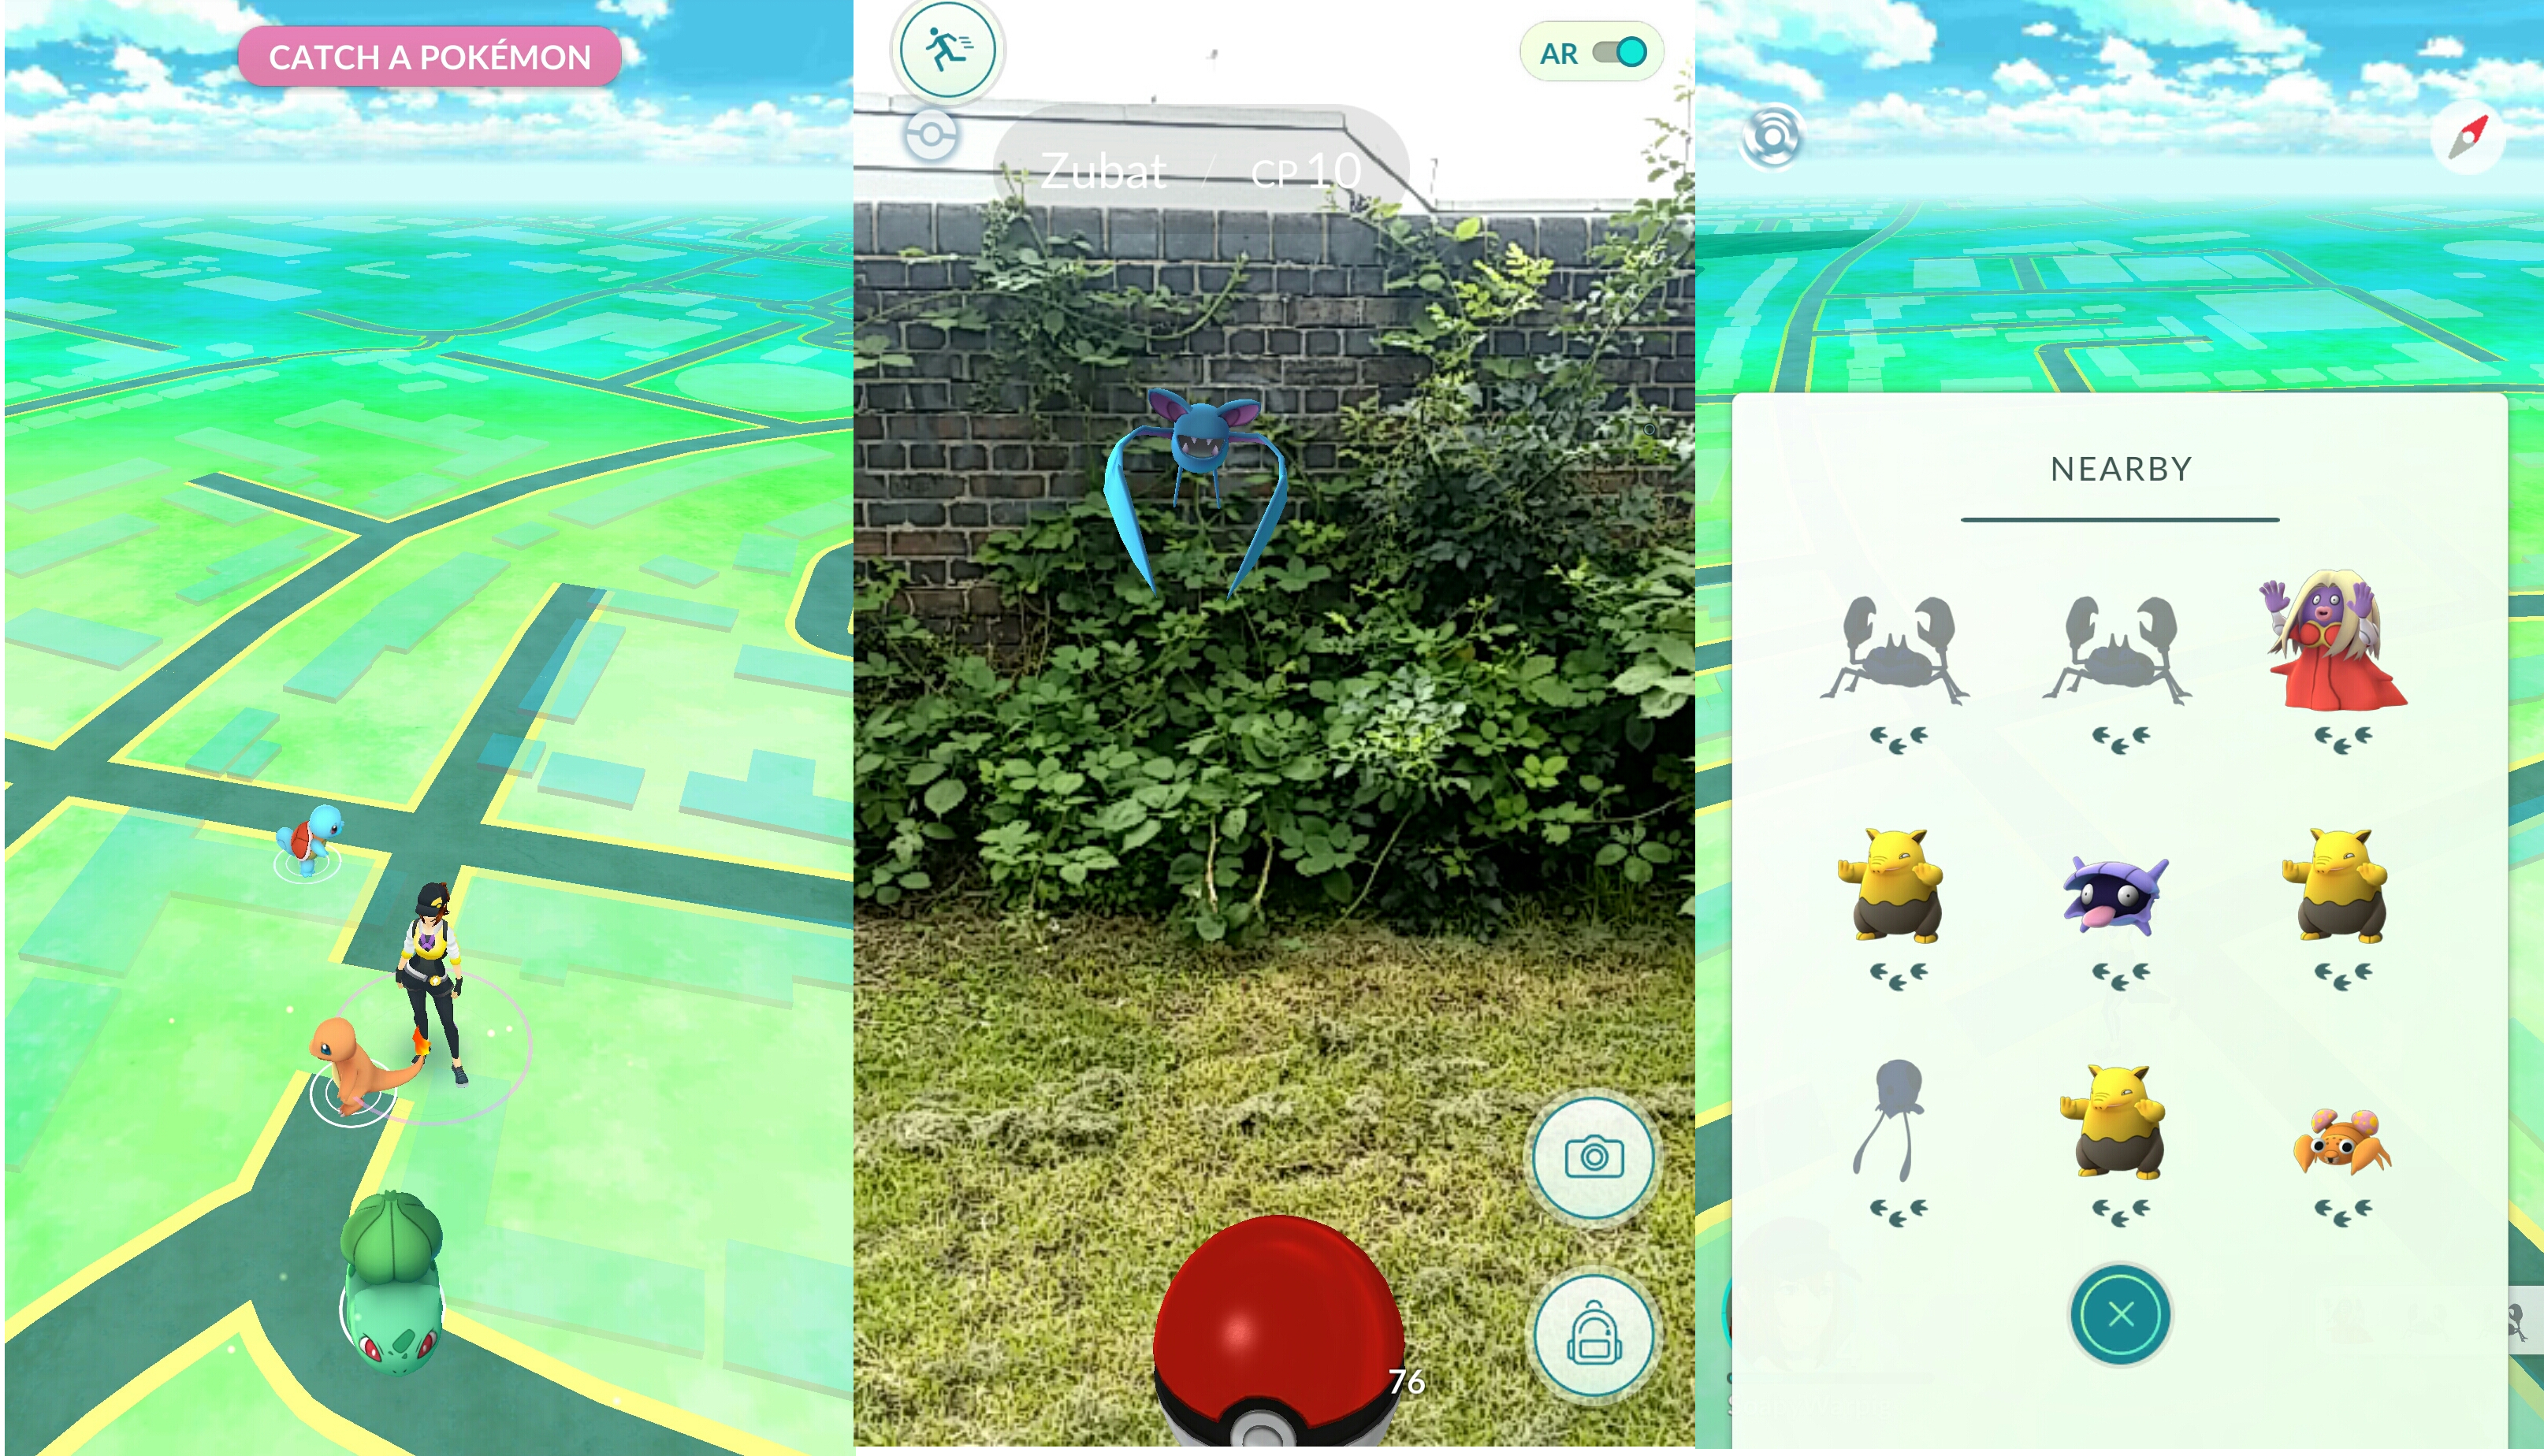 Pokemon Go Advanced Tips And Tricks For Catching Pokemon Vg247